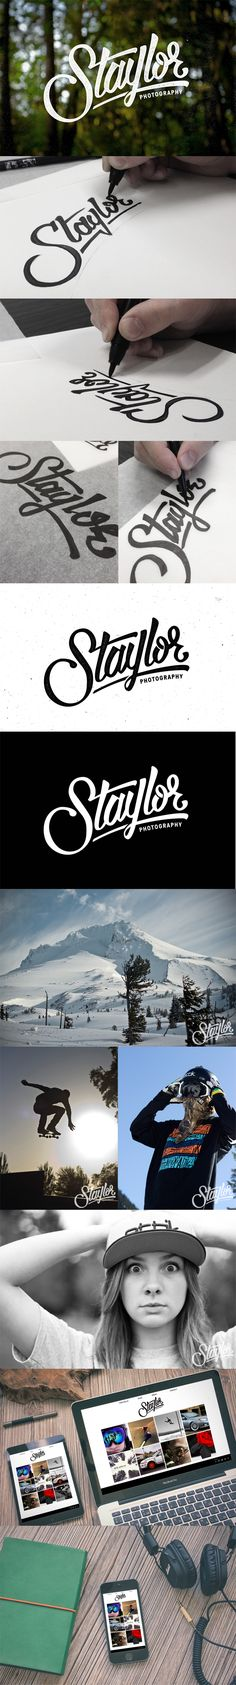 Staylor Photography by Brian Jagodnik, via Behance